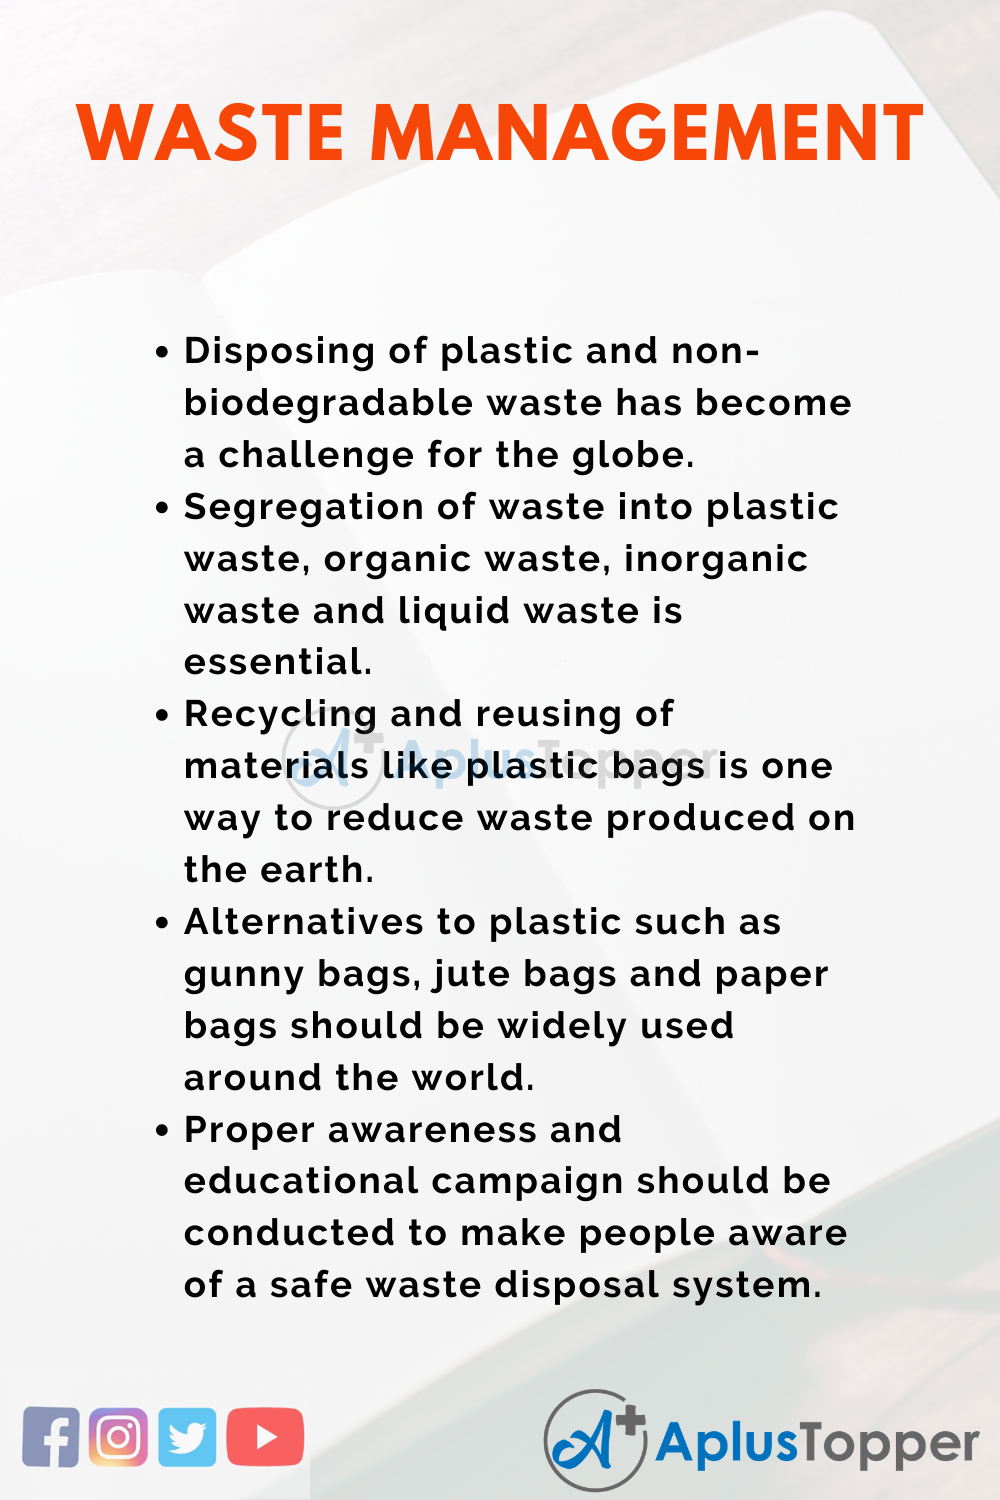 Essay about Waste Management